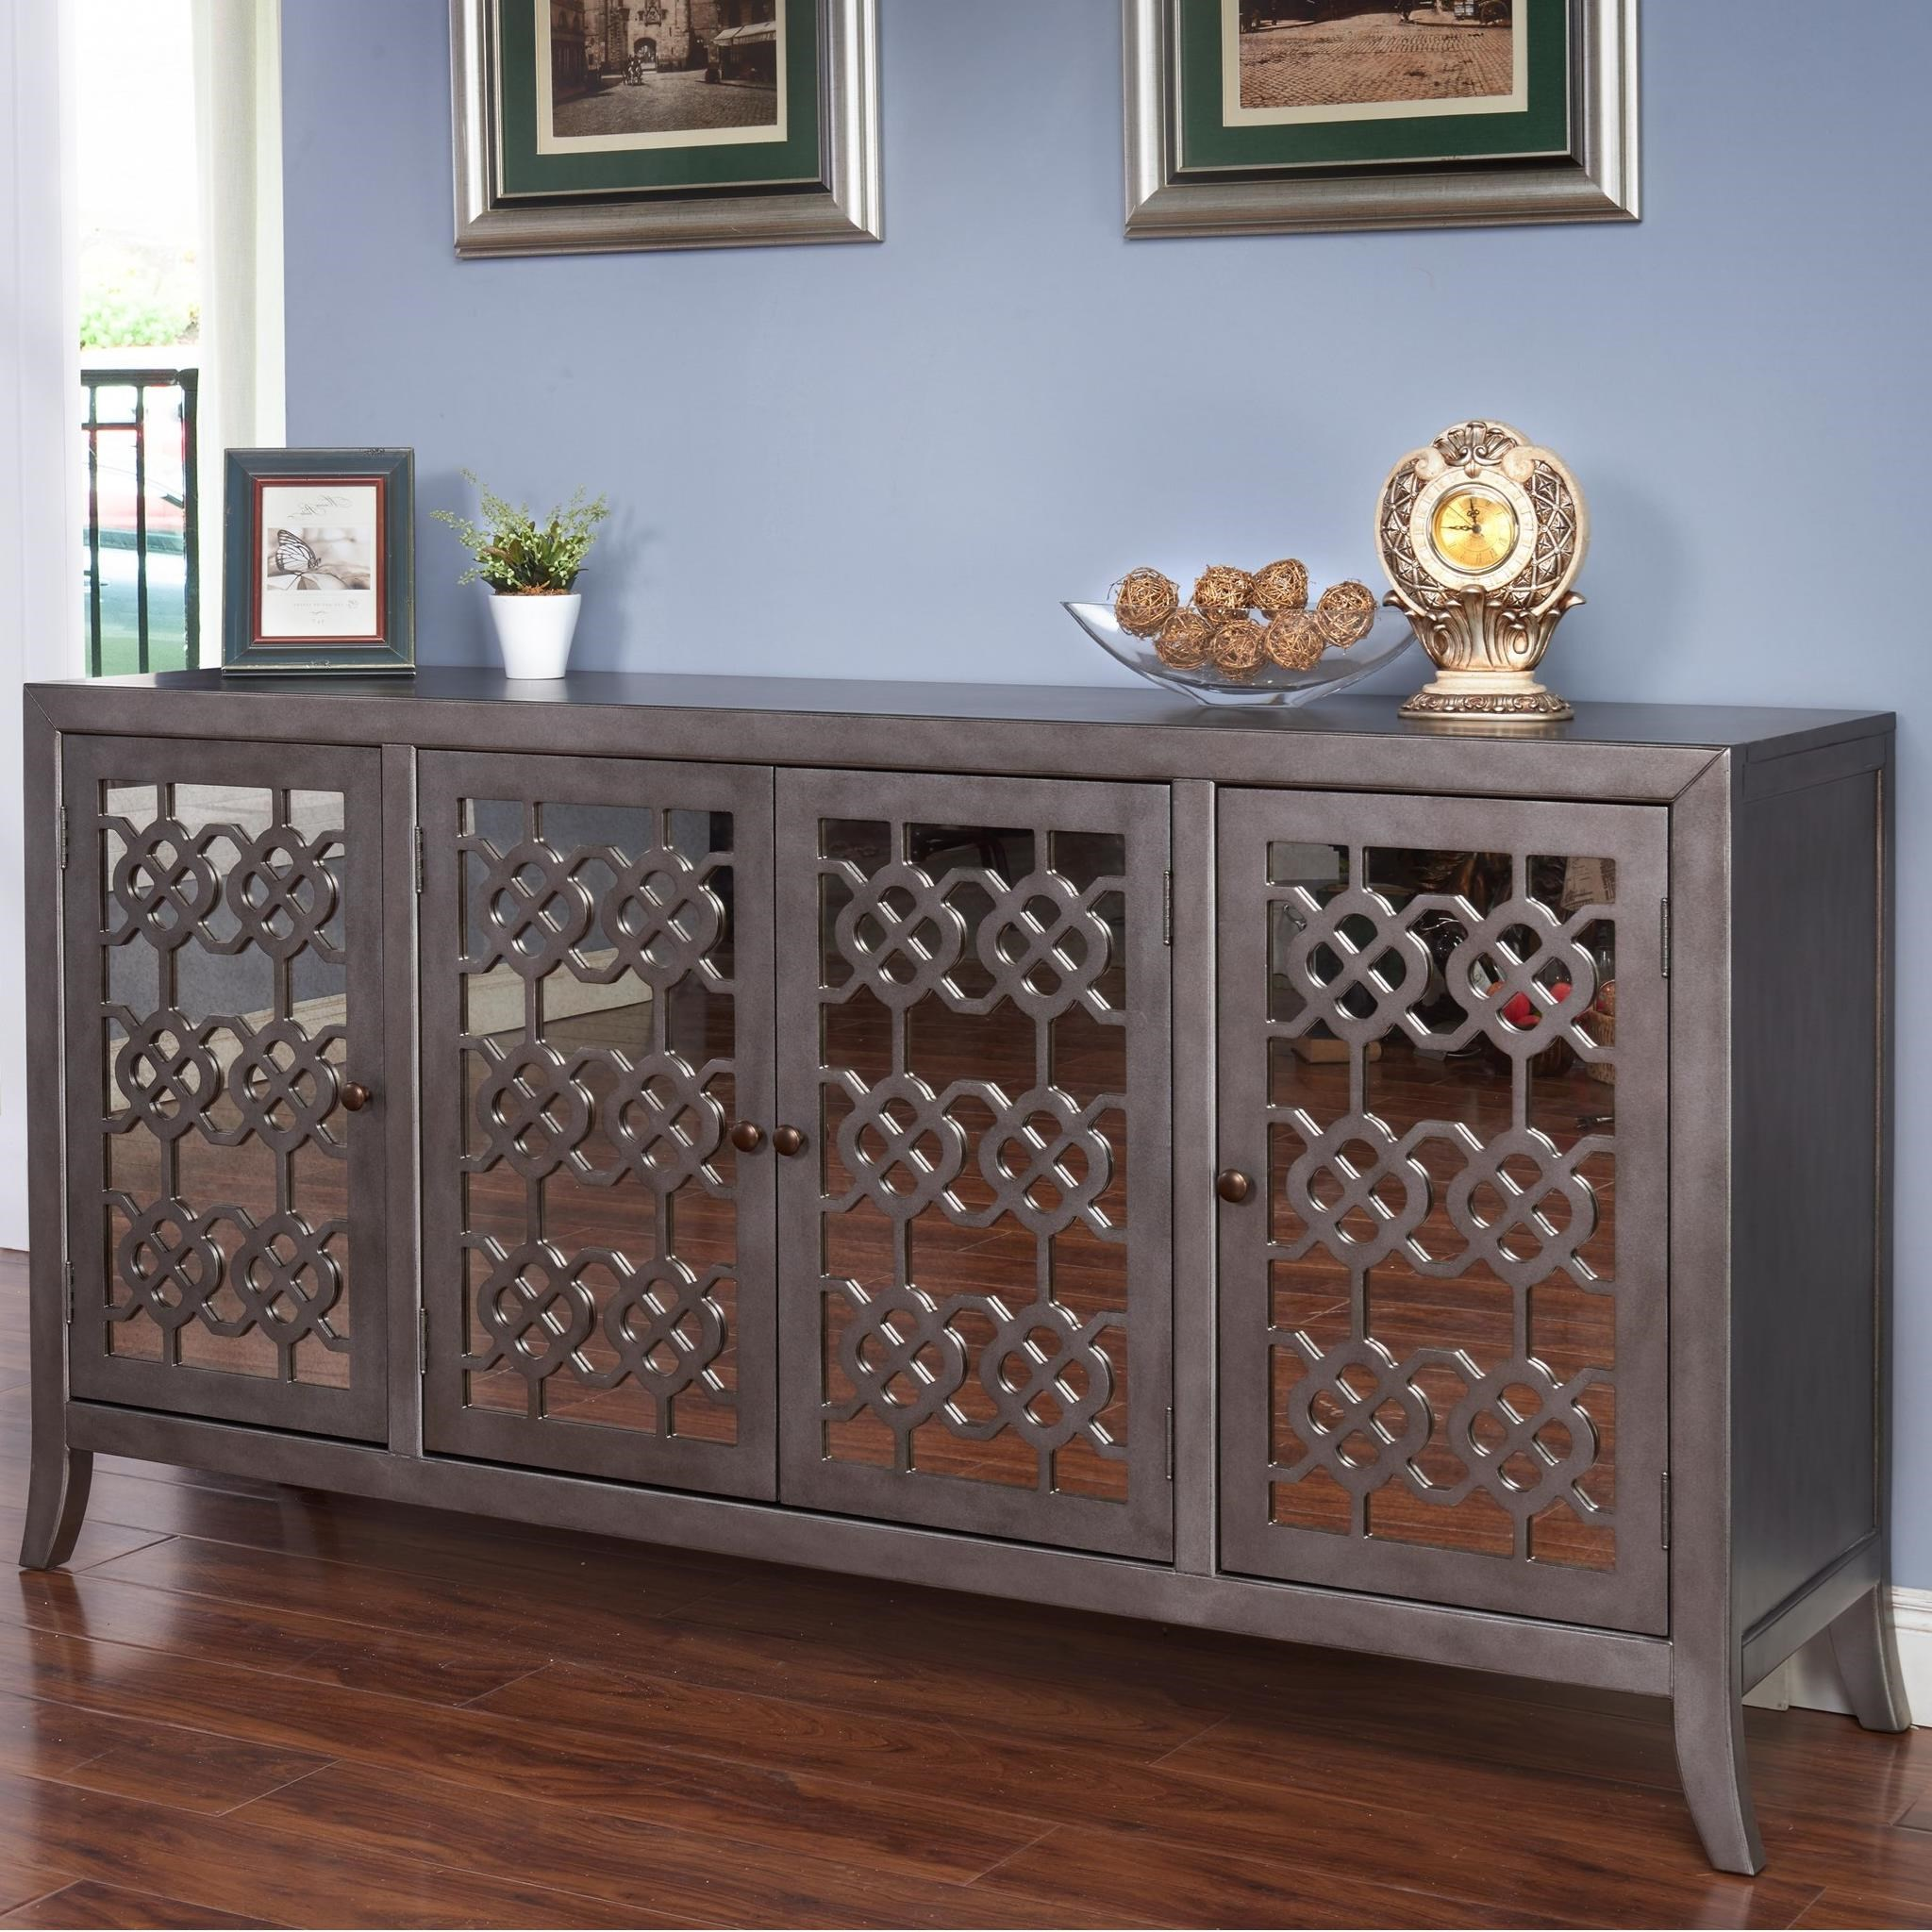 New Classic Charlotte Ta1011 4 Grp Four Door Credenza With